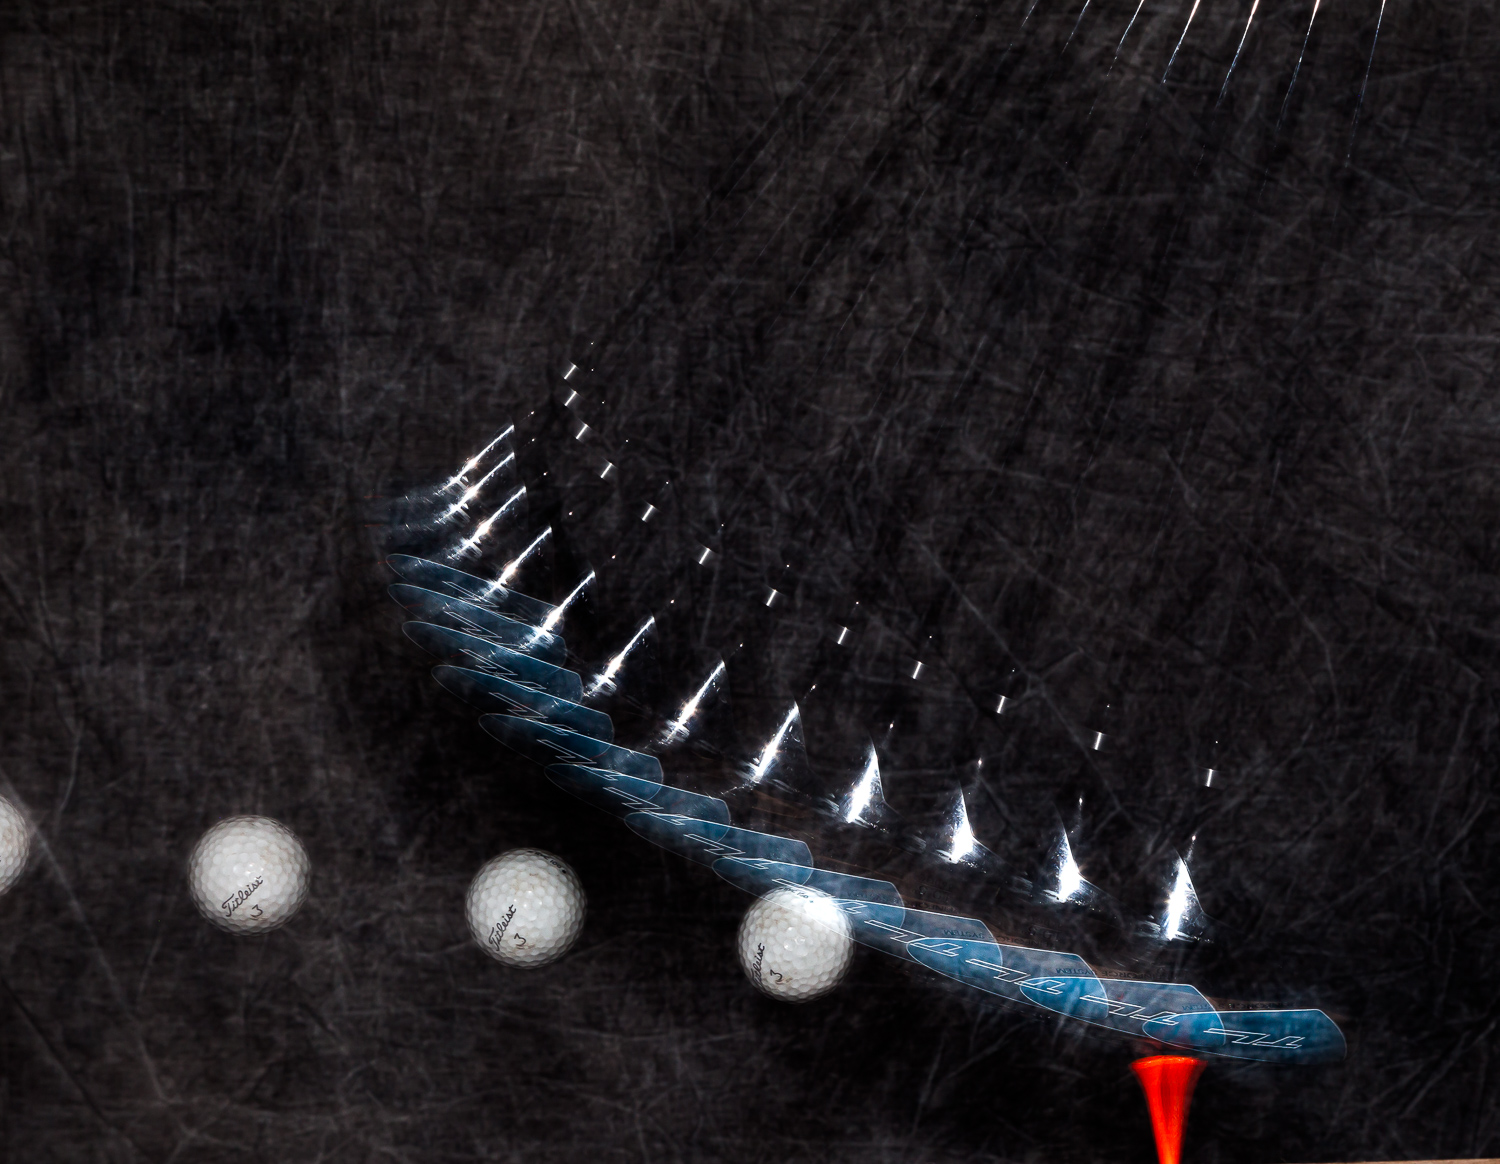 Image: A patterned background too close to the subject and a golf club with a black shaft and head m...